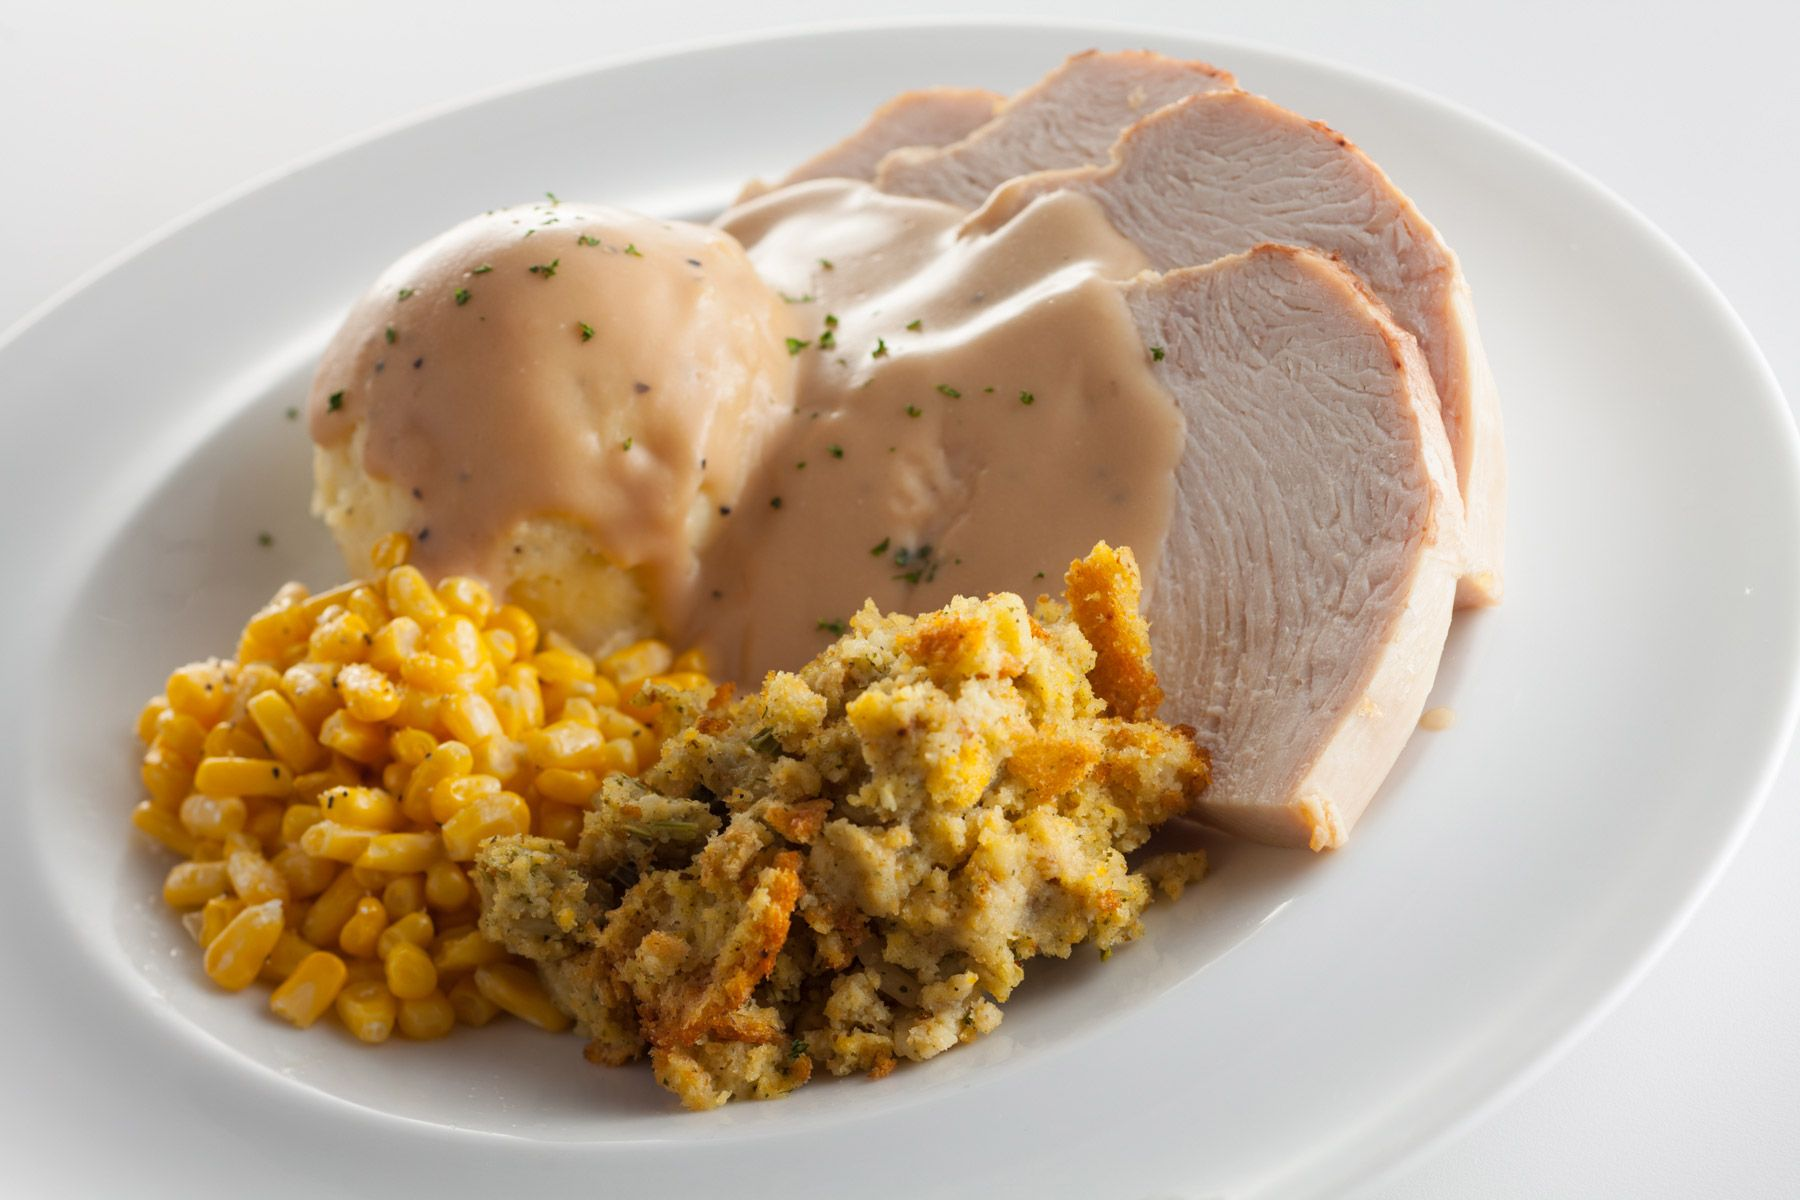 Sliced-Turkey-Breast-Mashed-Potatoes-and-Gravy-sweet-corn-and-stuffing-Gun-Lake-Casino_274.jpg